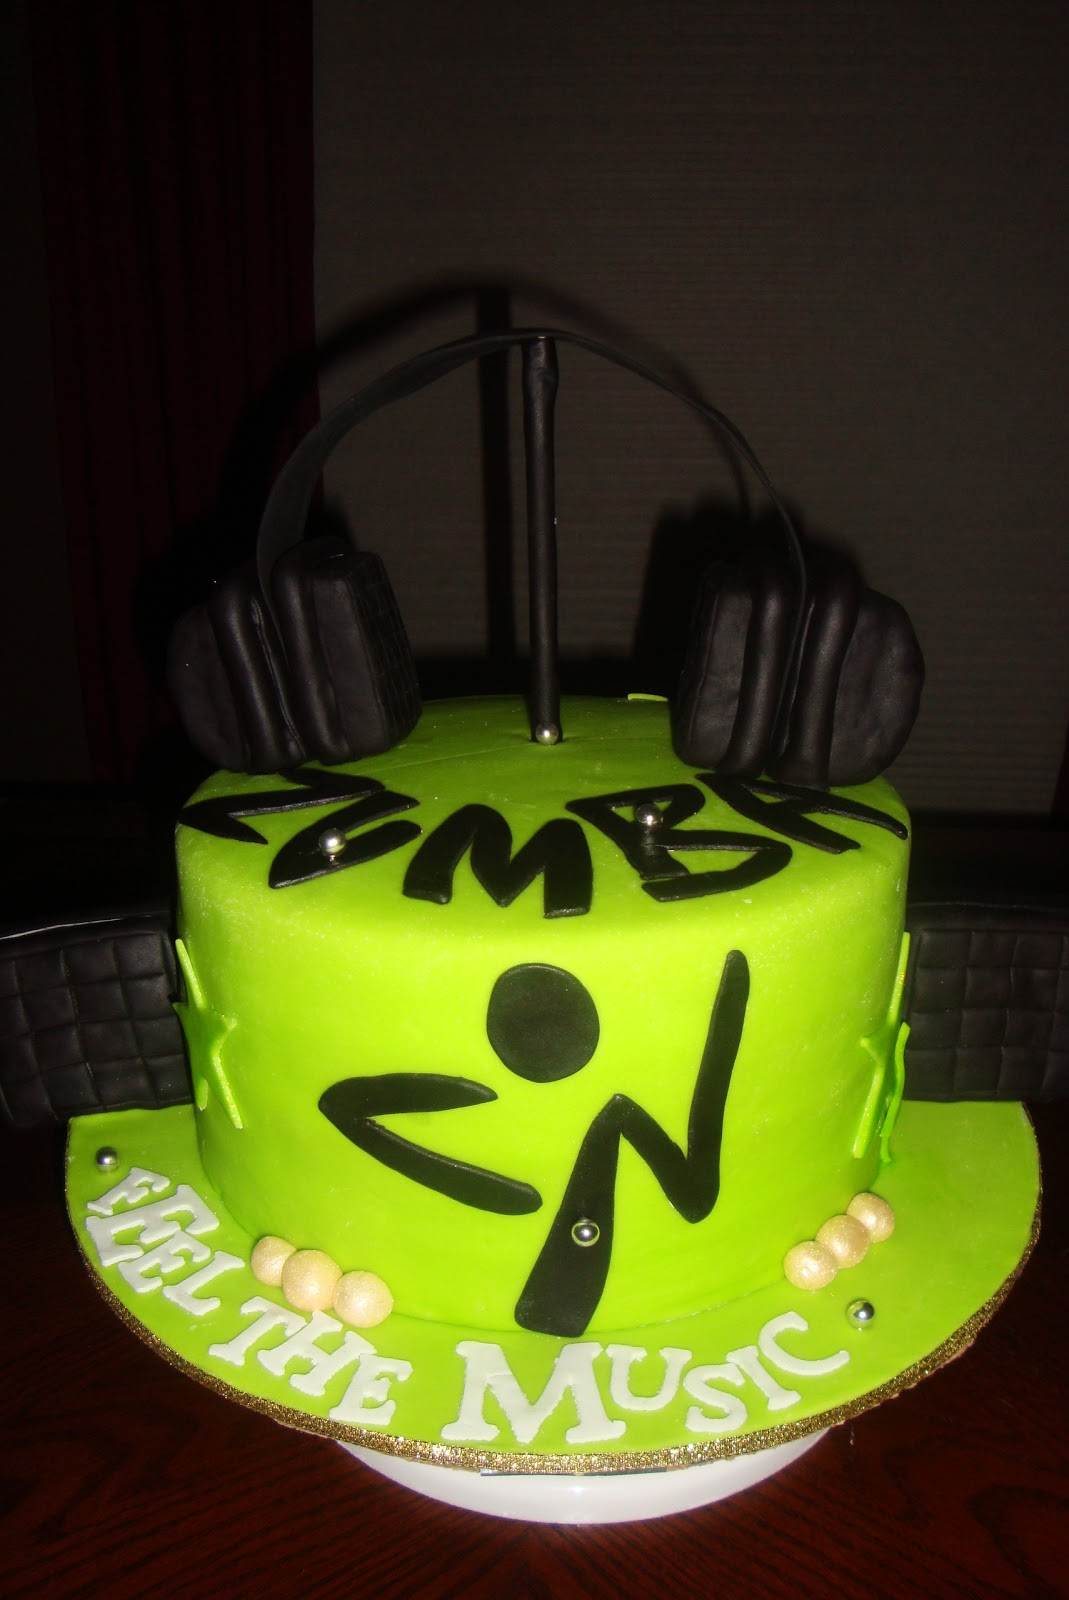 Zumba Birthday Cake http://cakeobsessionsmb.blogspot.com/2011/06/zumba-it-up.html